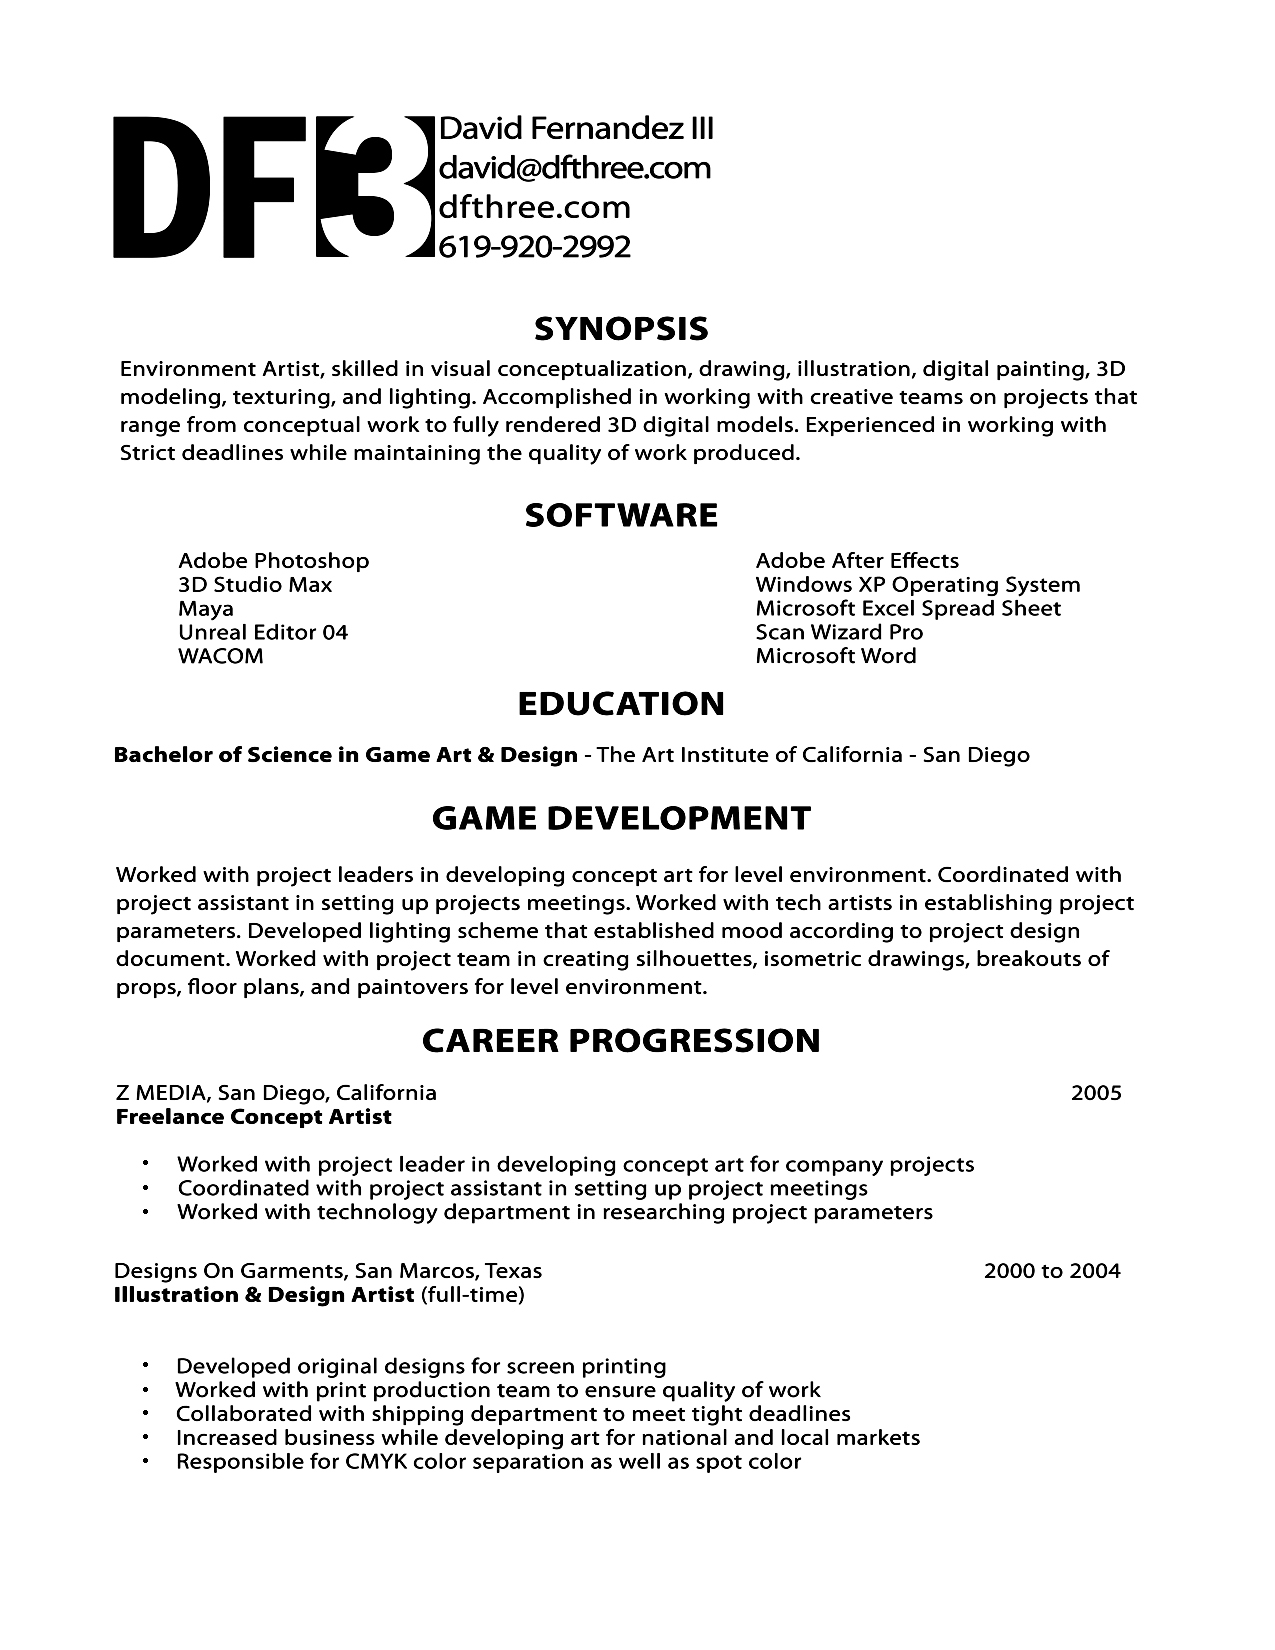 Opposenewapstandardsus  Remarkable Game Developer Resume Game Tester Resume Sample Game Tester  With Fair Better Jobs Faster With Extraordinary Analytics Resume Also Police Officer Resume Samples In Addition Vp Of Sales Resume And What Is Needed In A Resume As Well As Resume Writing Samples Additionally Debt Collector Resume From Kelseymarieco With Opposenewapstandardsus  Fair Game Developer Resume Game Tester Resume Sample Game Tester  With Extraordinary Better Jobs Faster And Remarkable Analytics Resume Also Police Officer Resume Samples In Addition Vp Of Sales Resume From Kelseymarieco